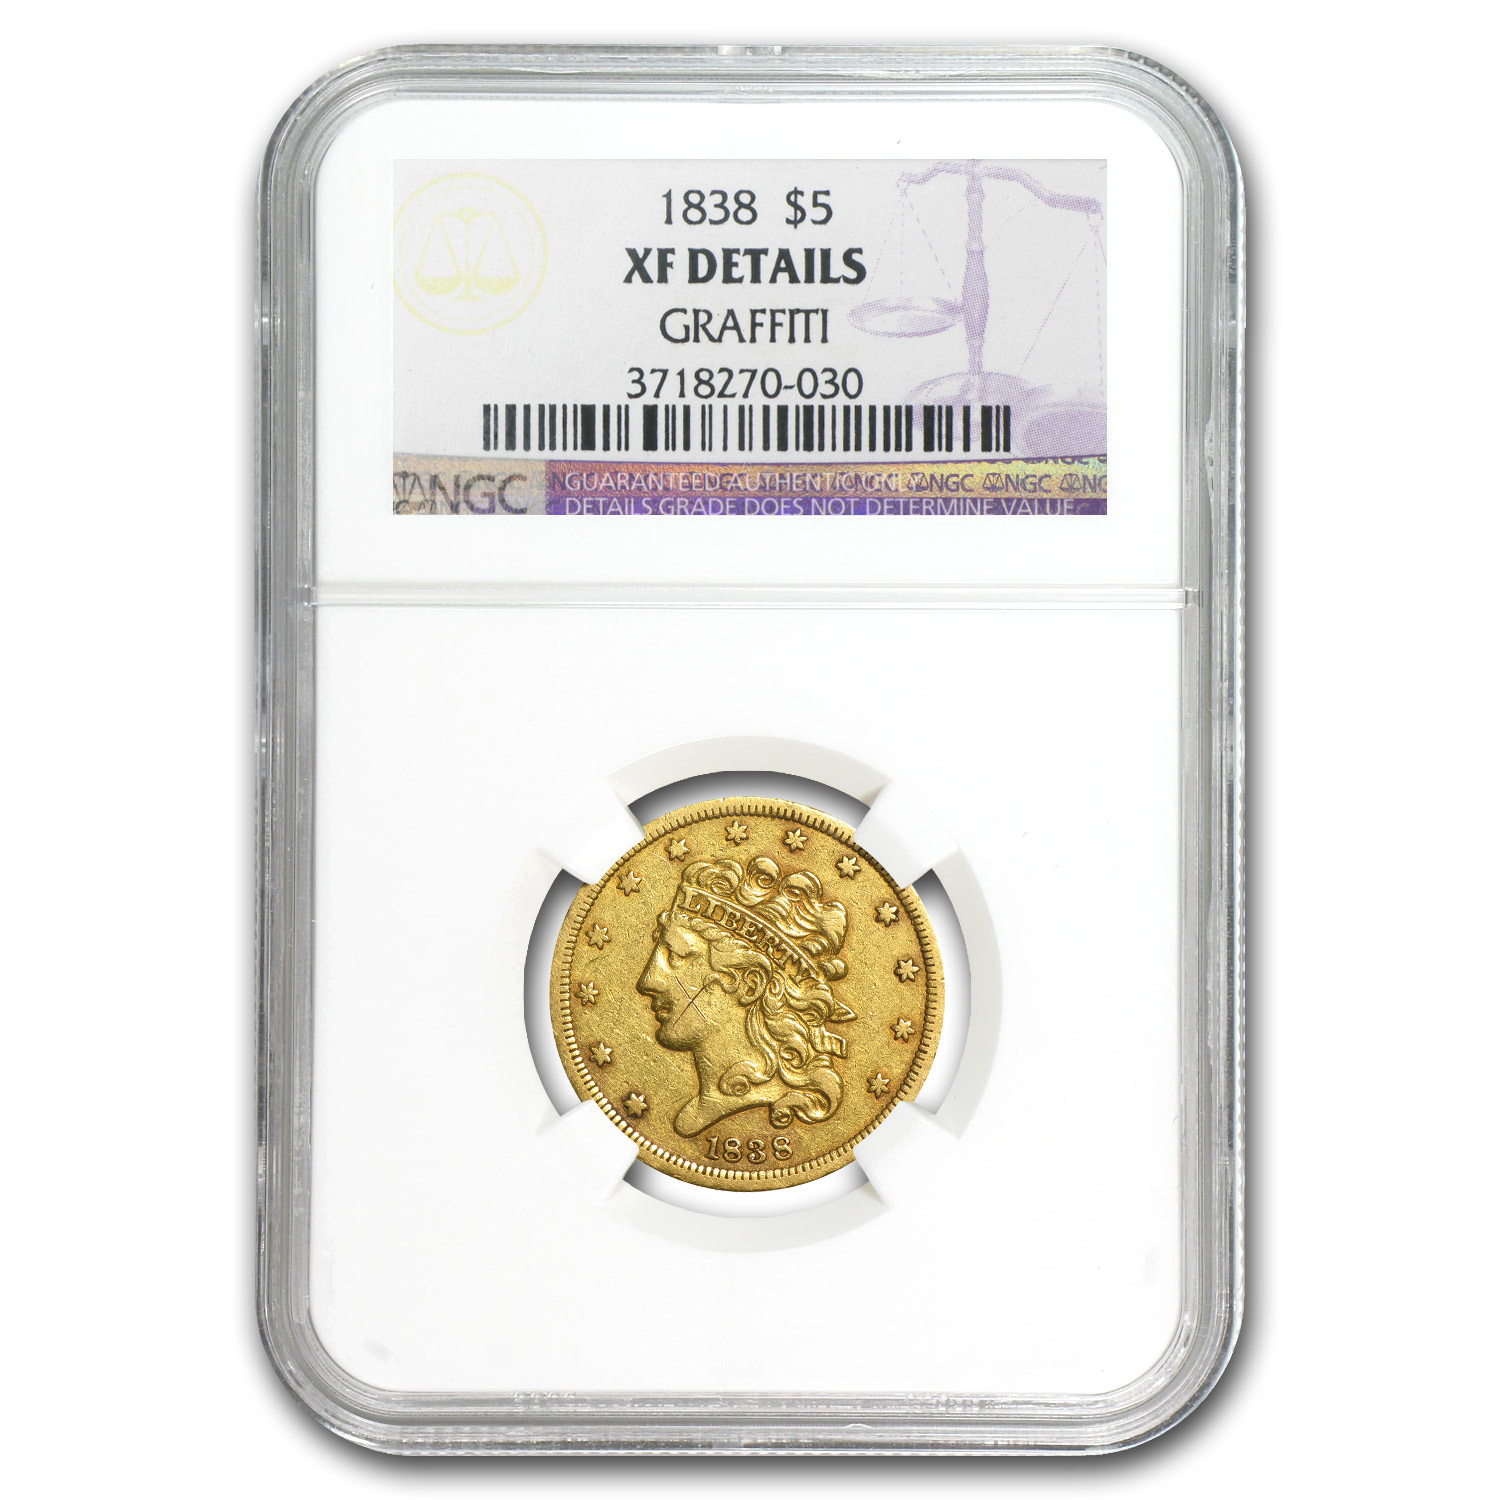 1838 $5 Gold Classic Head Half Eagle - XF Detail NGC - (Graffiti)